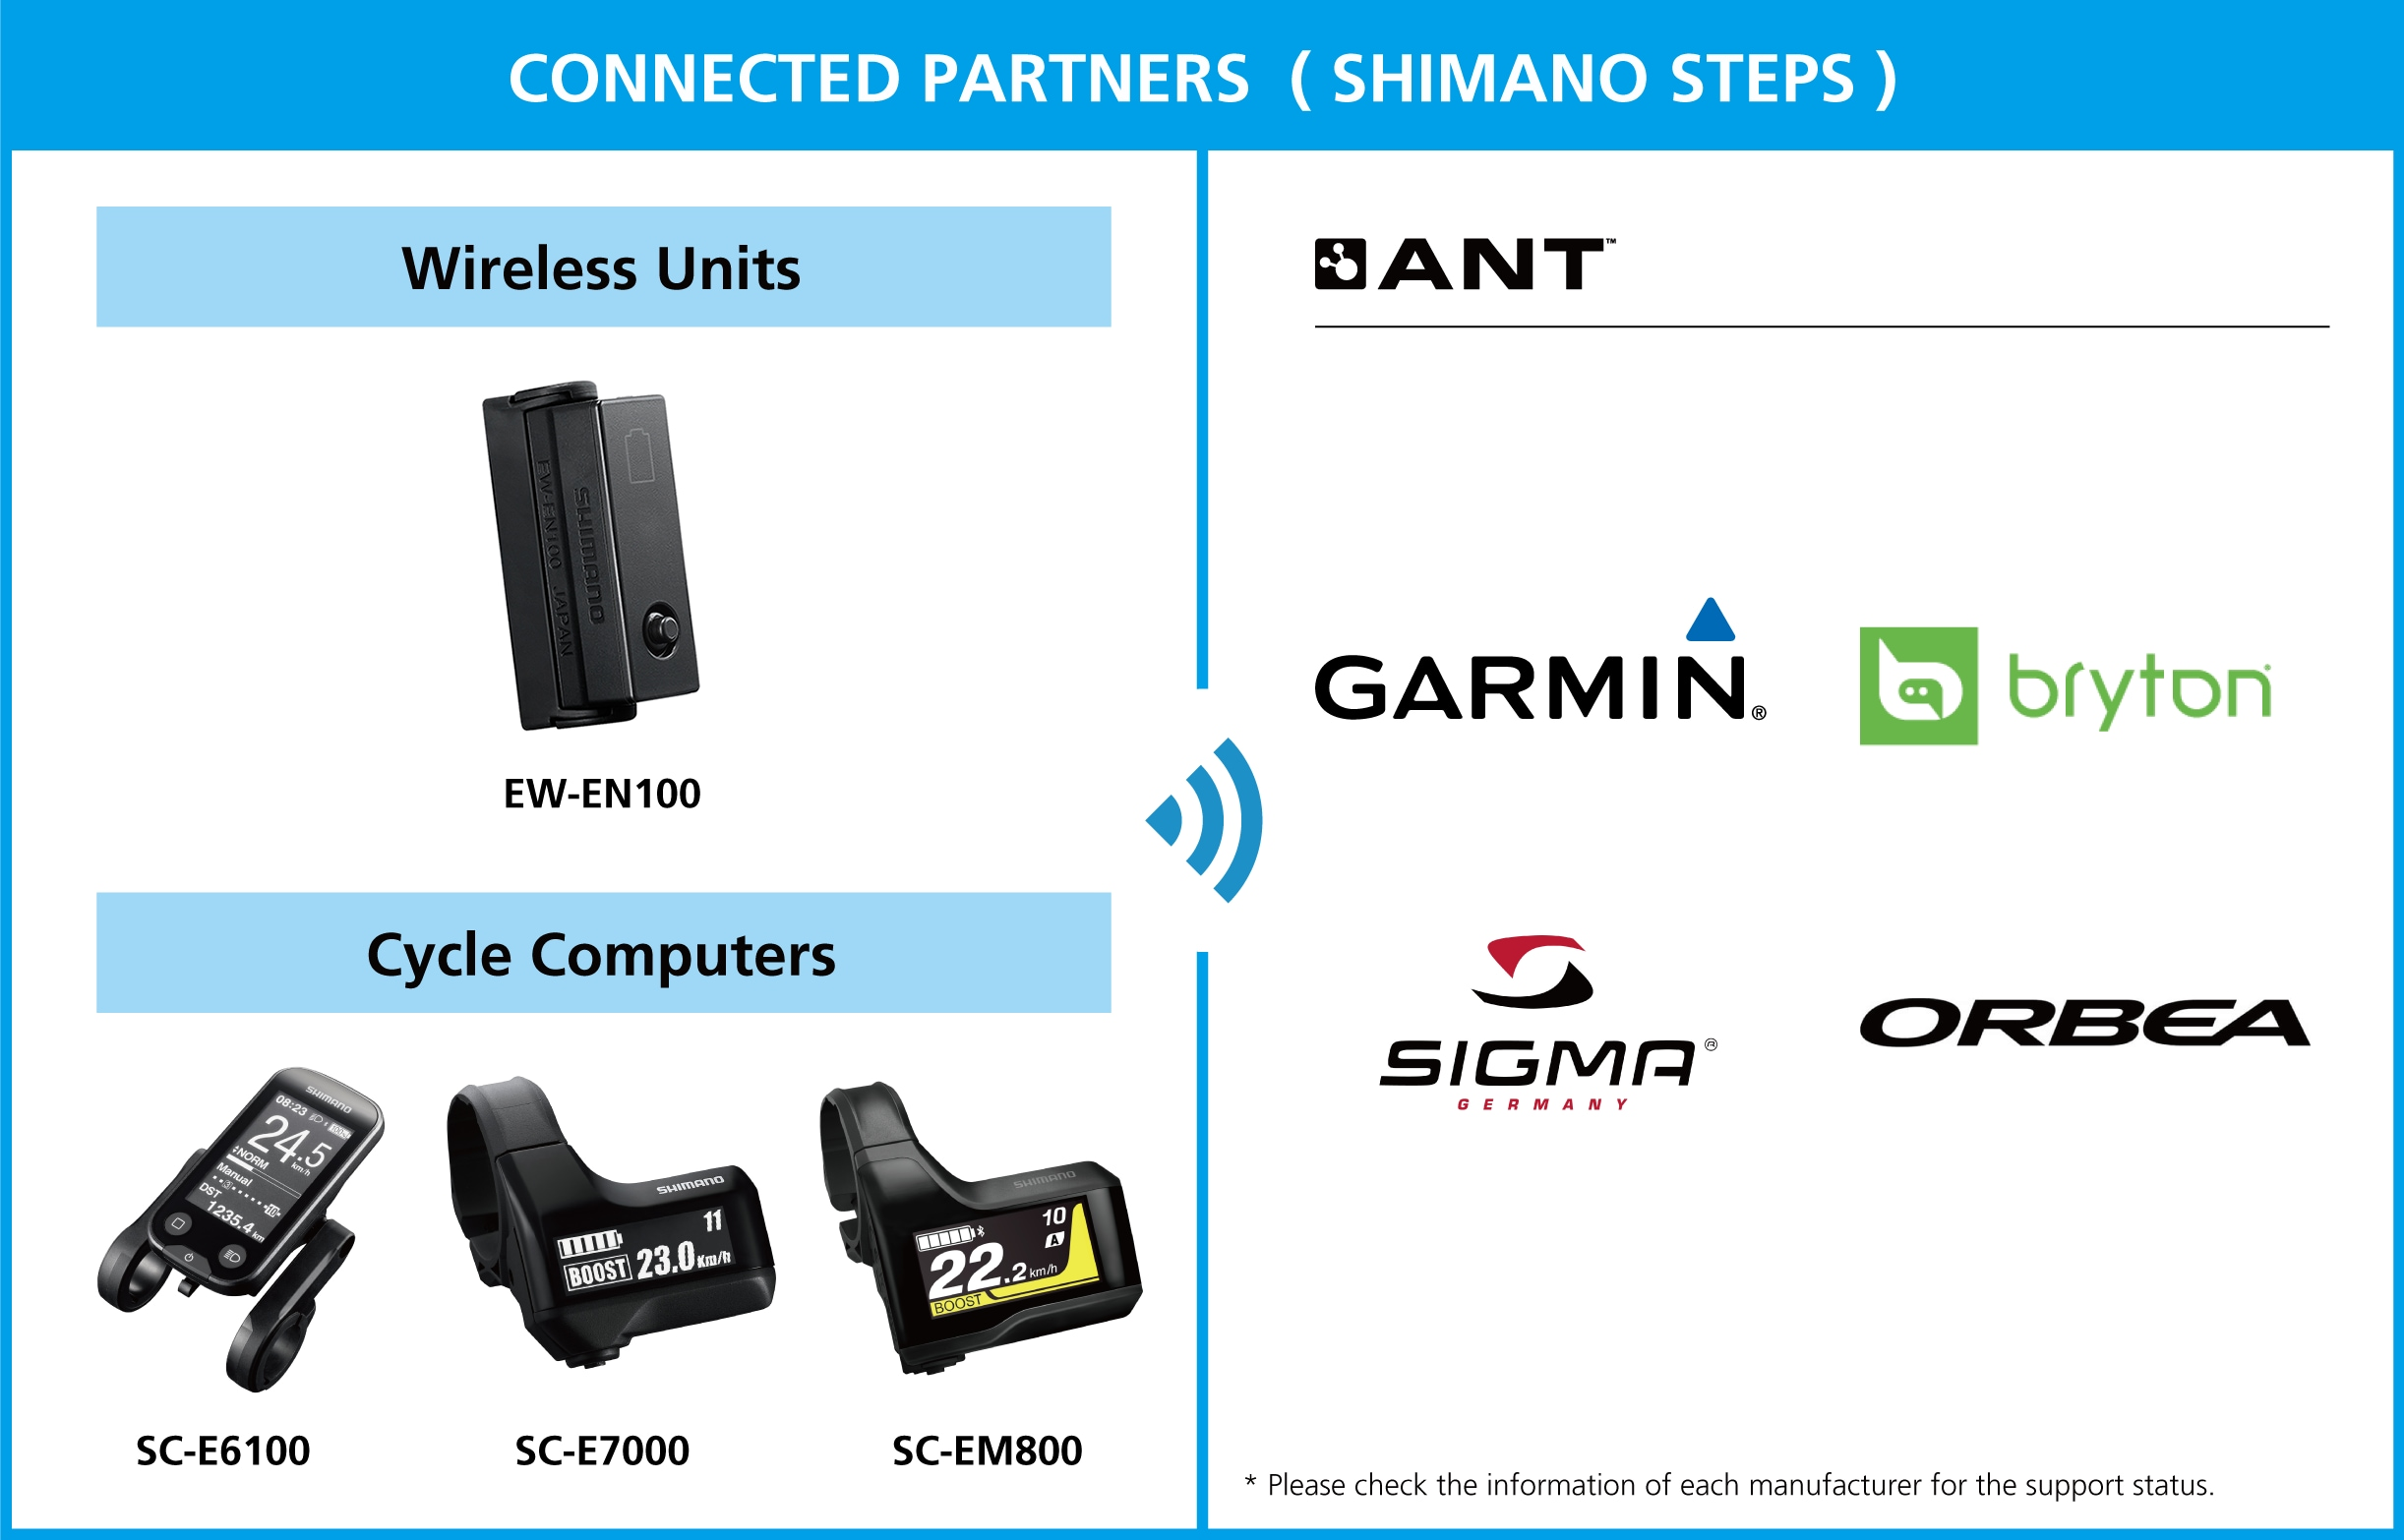 CONNECTED PARTNERS SHIMANO STEPS